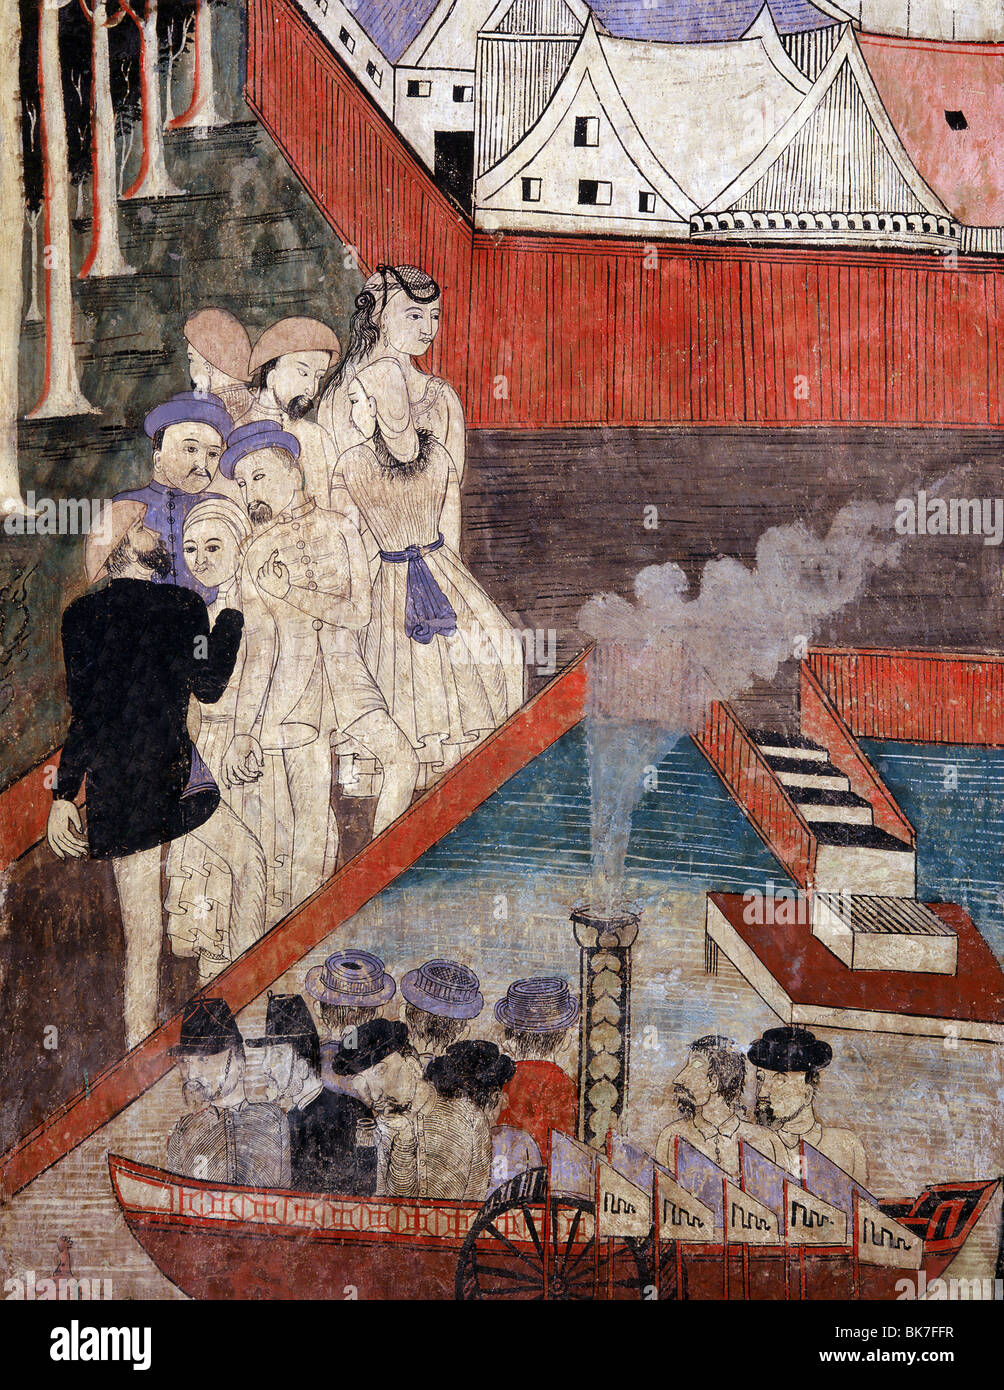 Foreign traders and Chinese merchants depicted in a mural dating in Wat Phumin in the town of Nan, Northern Thailand - Stock Image